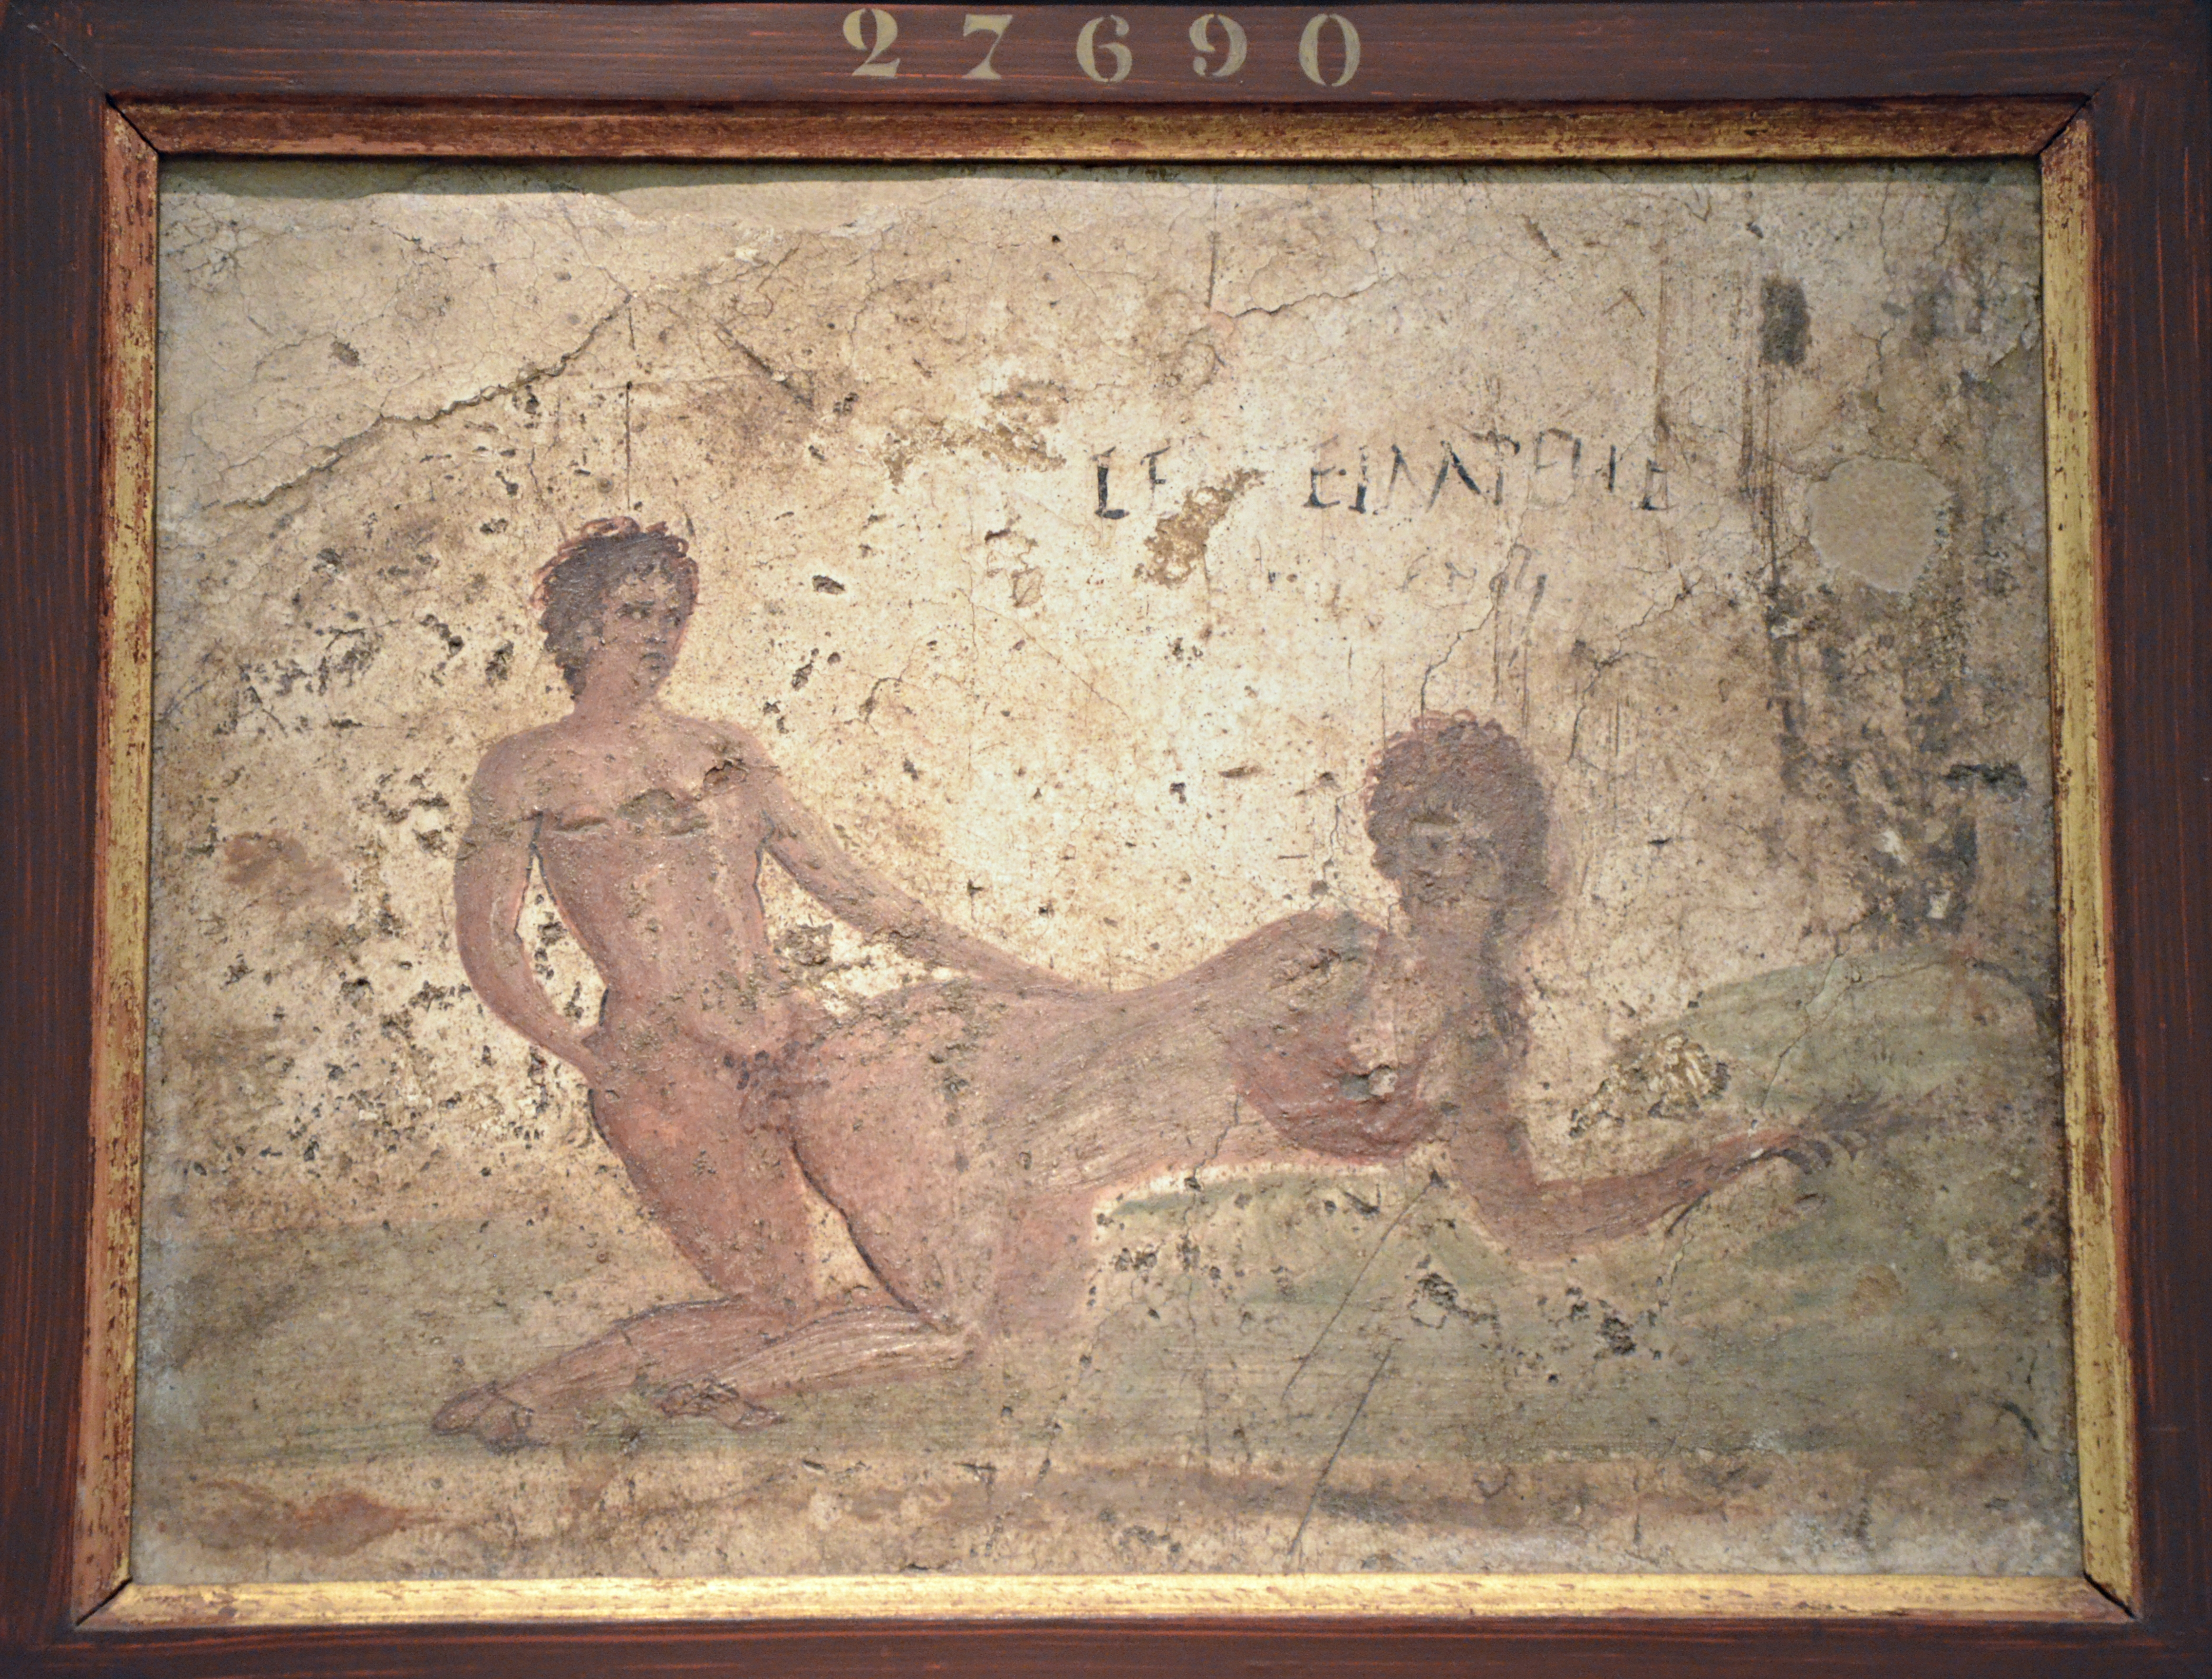 FileFragment of wall painting with erotic scene from Pompeii Naples National Archaeological & File:Fragment of wall painting with erotic scene from Pompeii ...